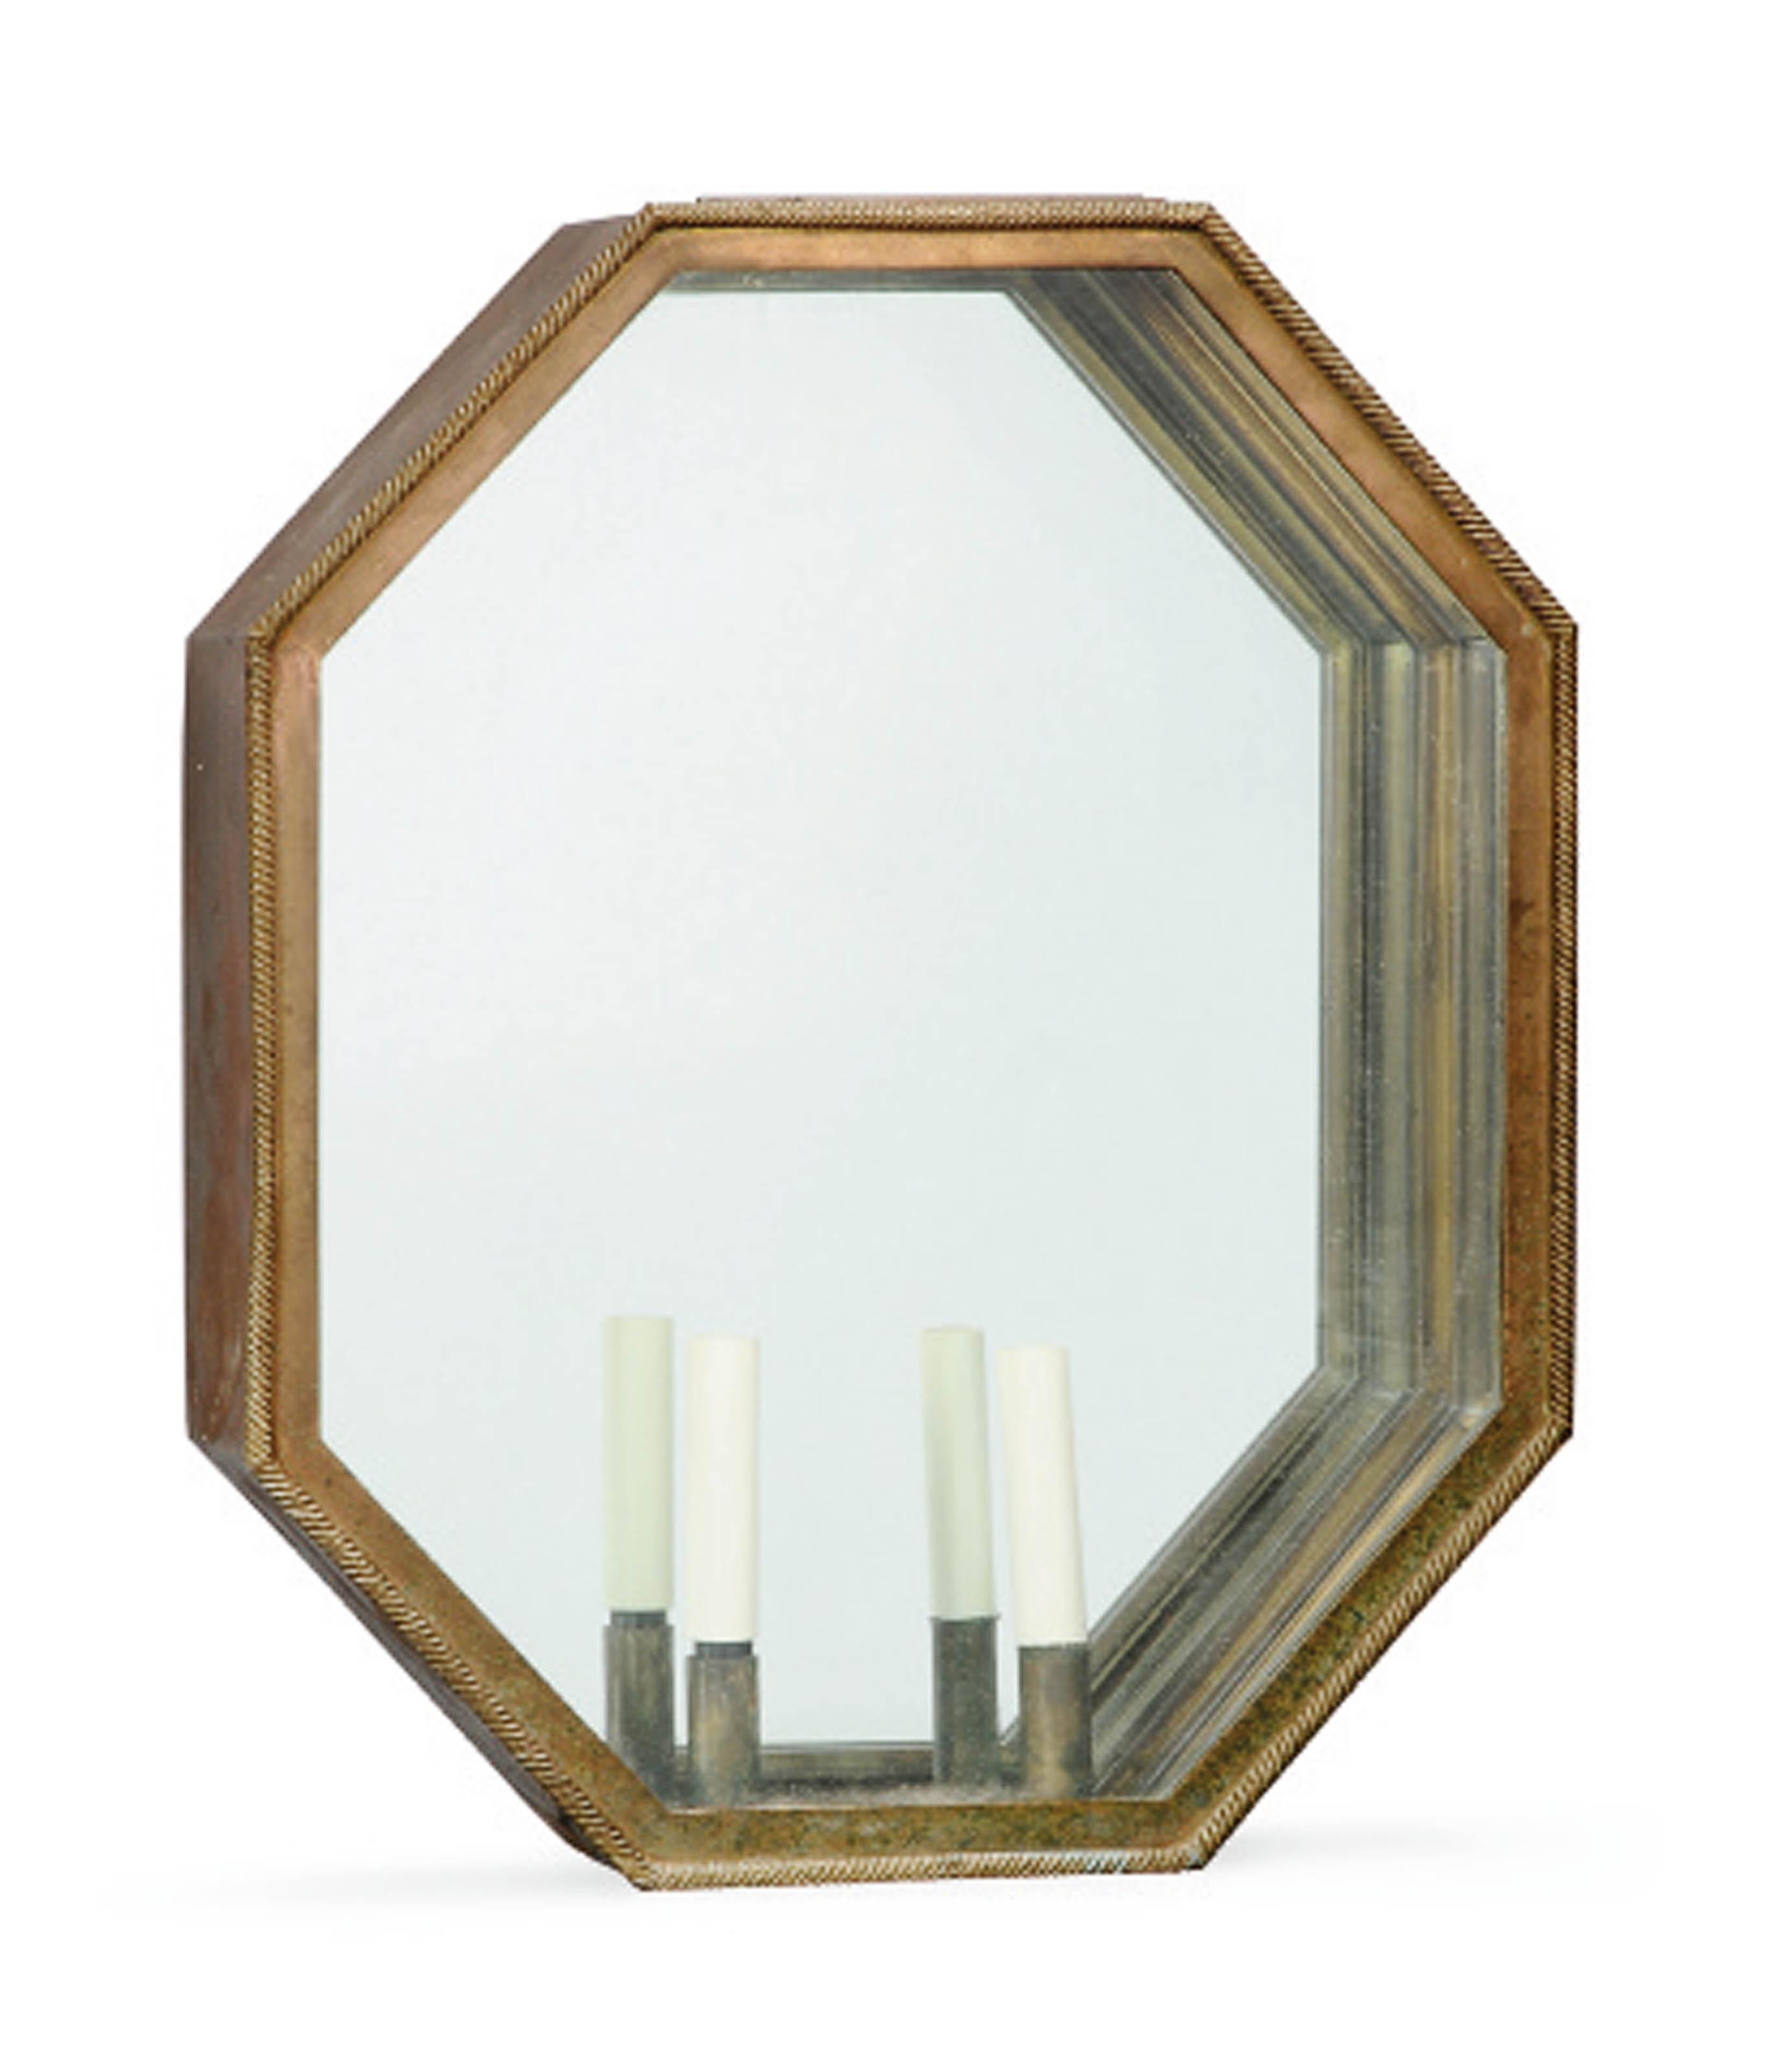 A MODERN POLYGONAL MIRRORED BRASS WALL LANTERN